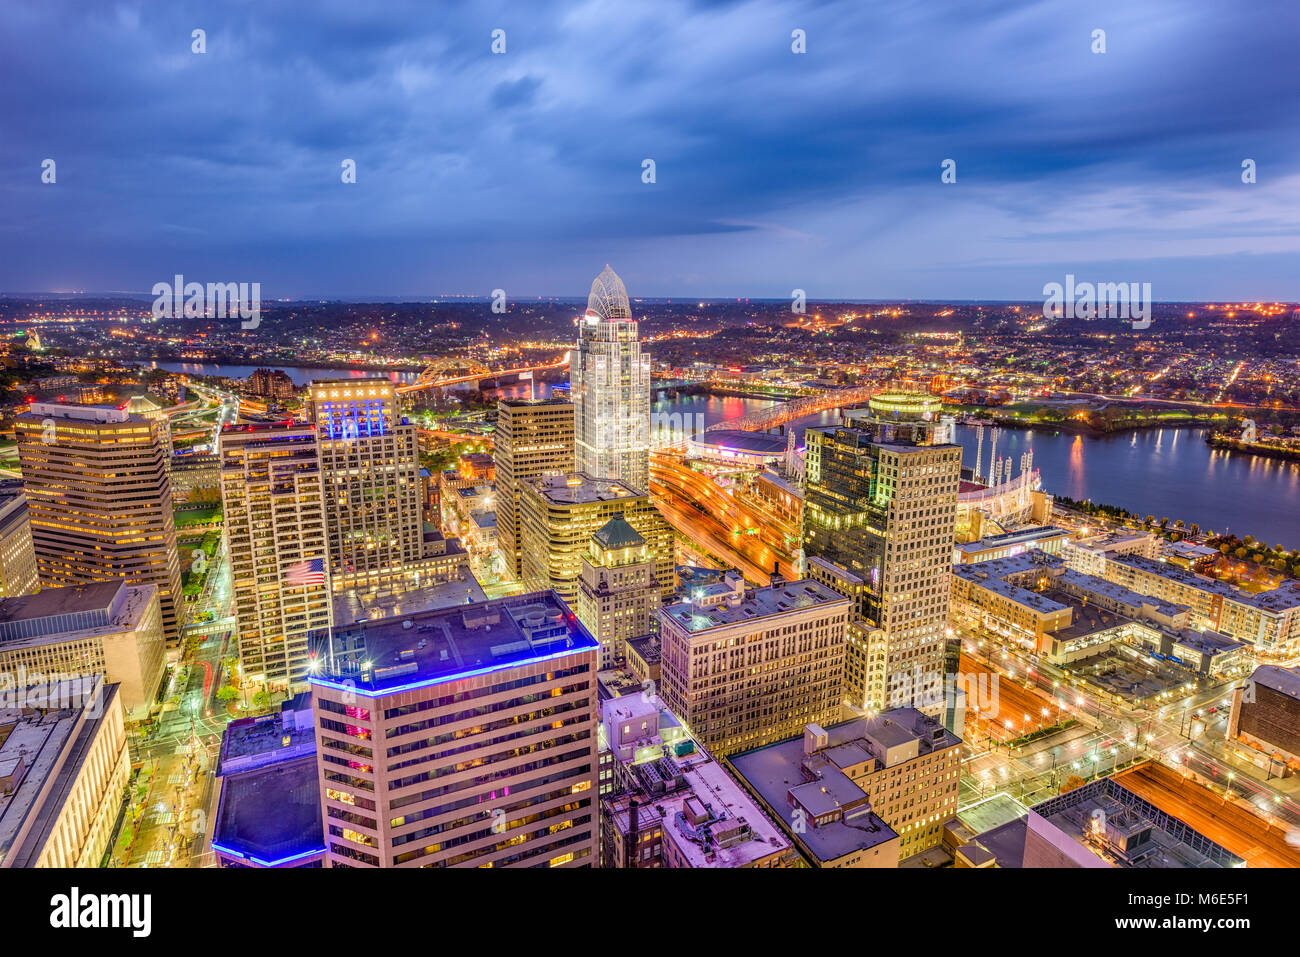 Cincinnati, Ohio, USA skyline from above at dusk. - Stock Image